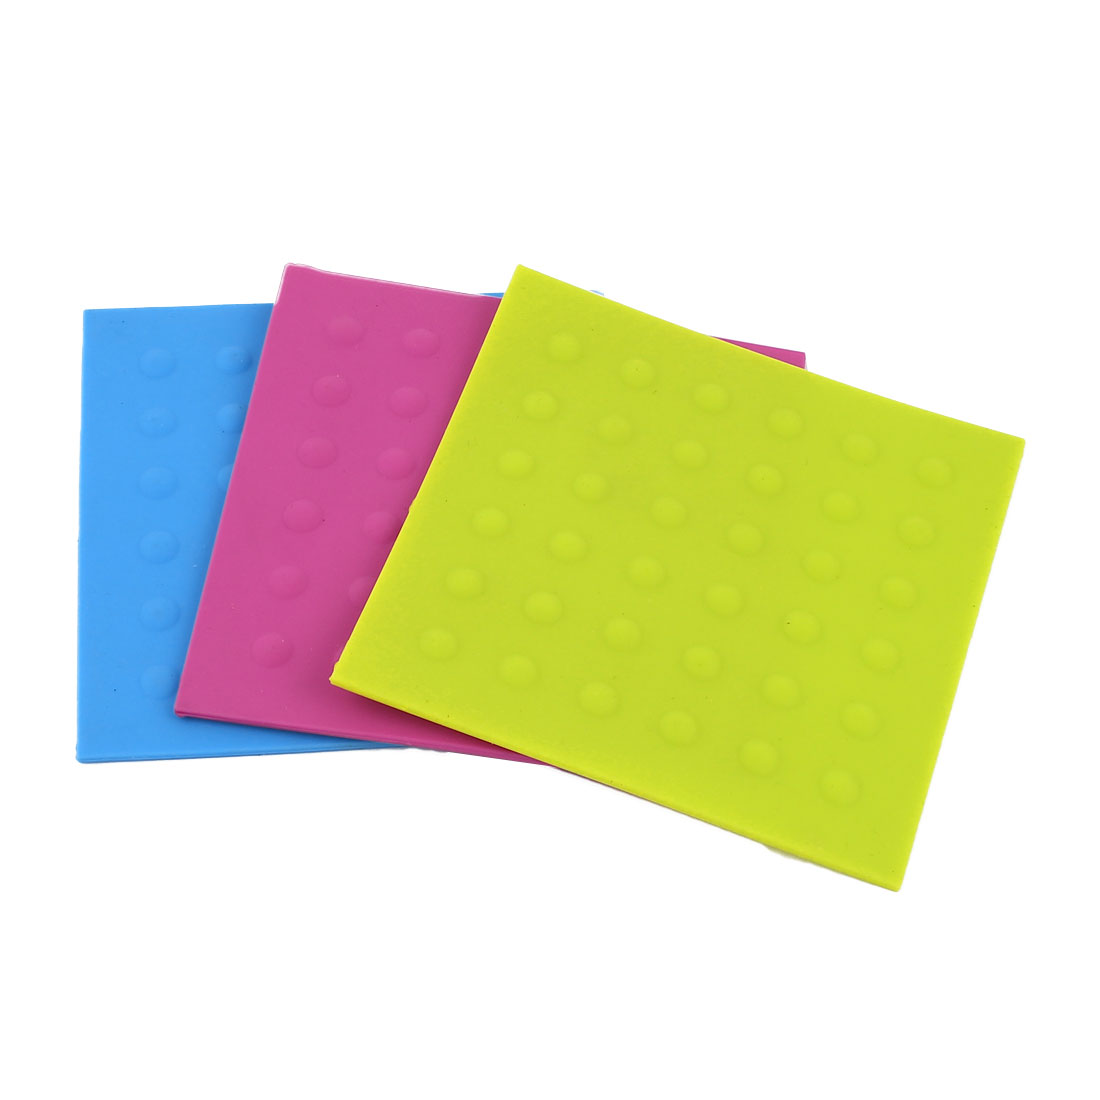 3 Pcs Soft Rubber Nonslip Cup Beverage Coaster Cushion Mat Placemat Pad Blue Yellow Fuchsia